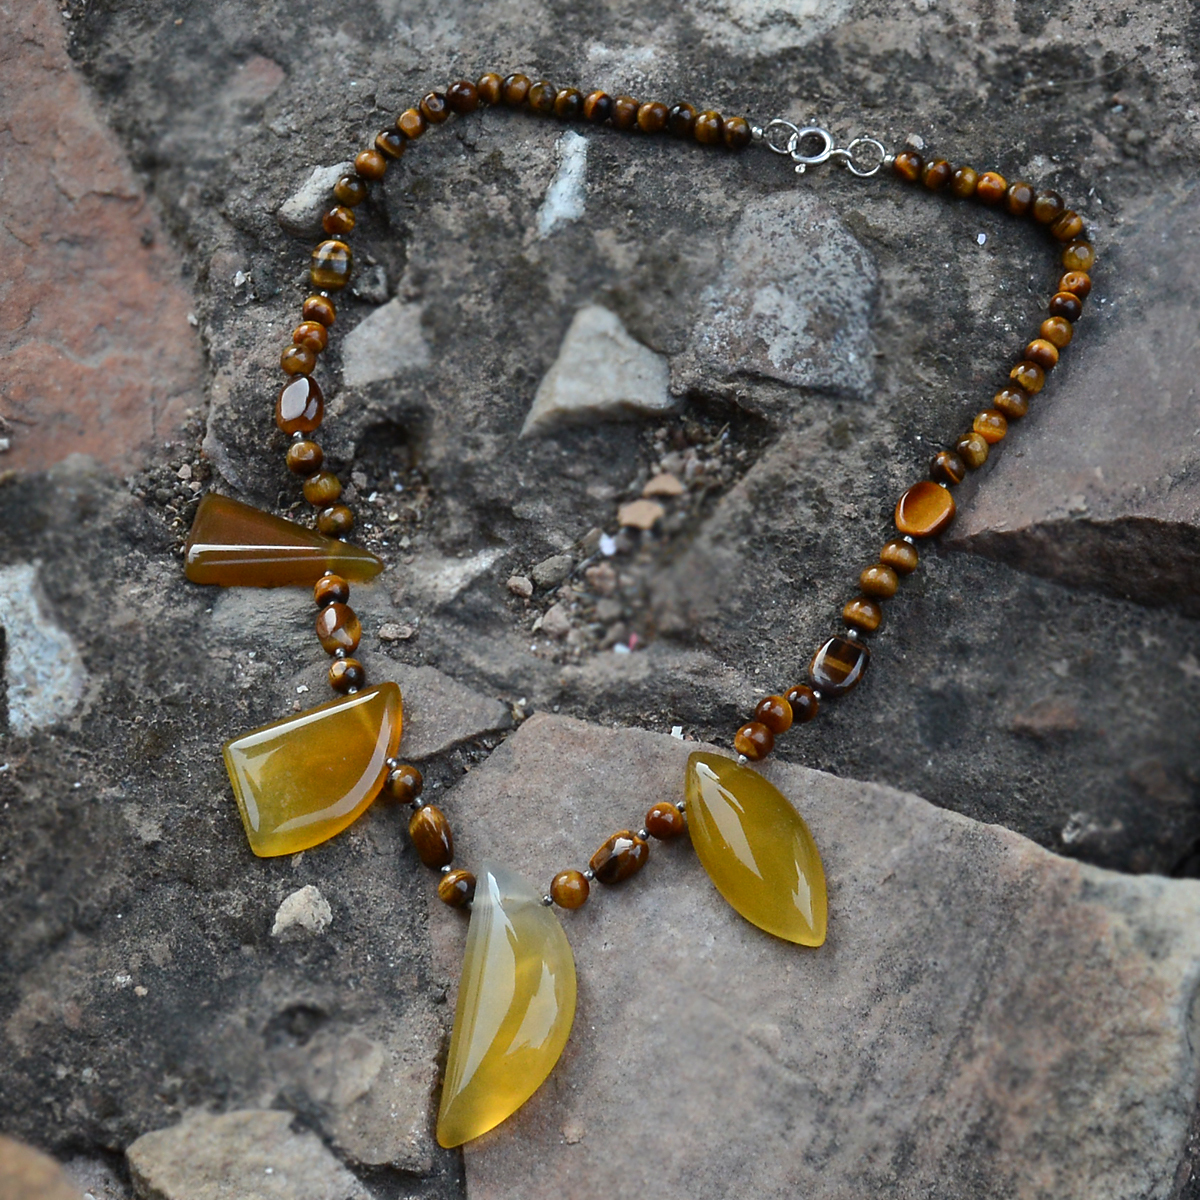 Handmade Jewelry Manufacturer 925 Sterling Silver, Beaded Tiger Eye & Yellow Onyx, Spring Ring Hook Necklace Jaipur Rajasthan India